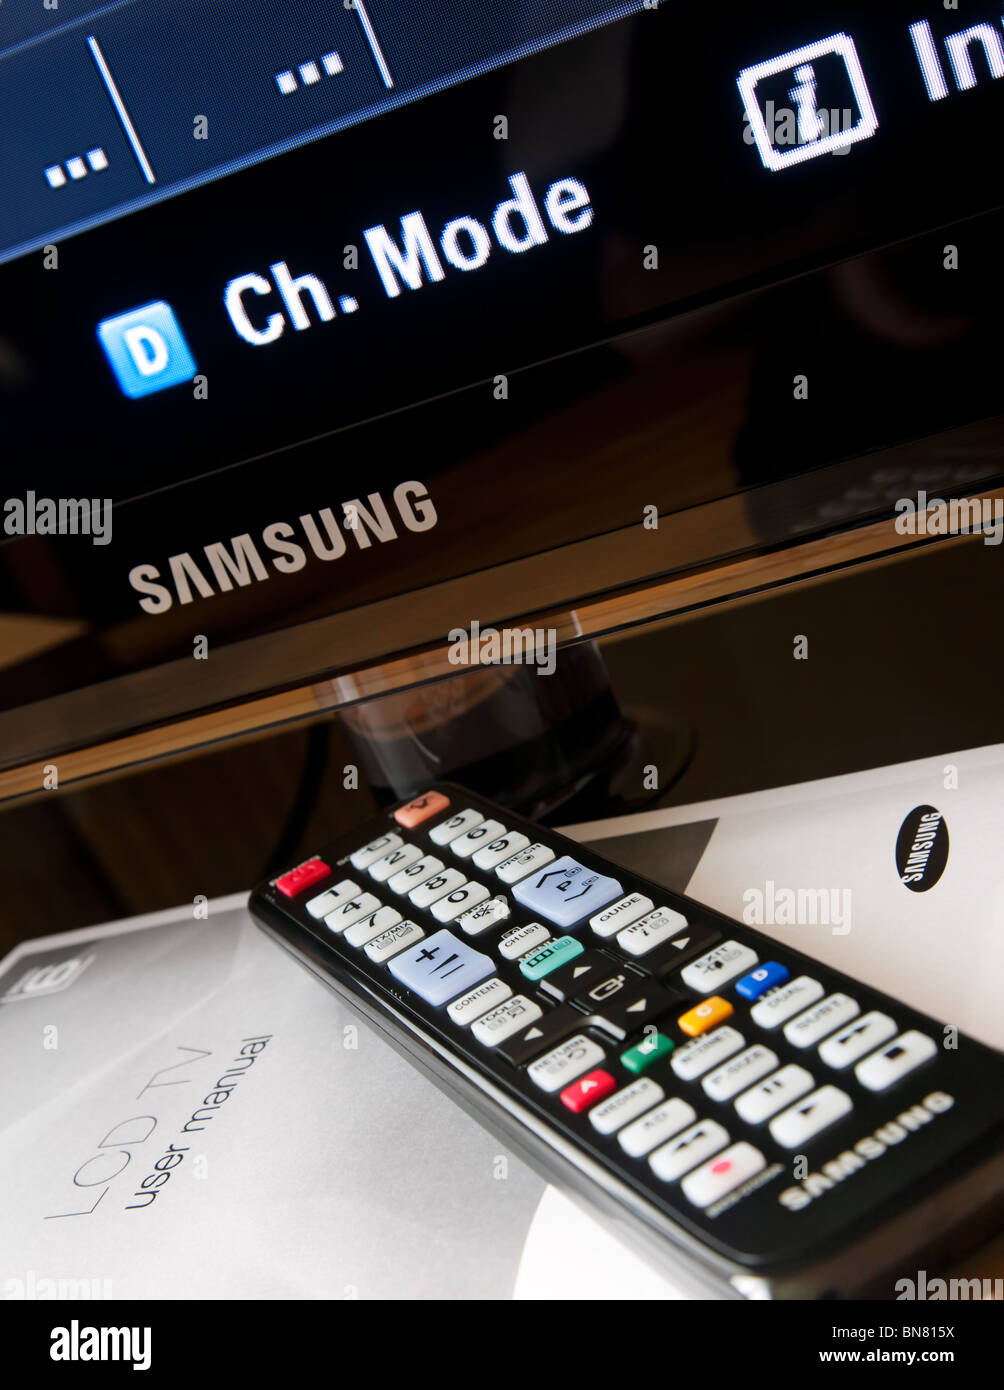 Samsung LCD flat screen television with remote control and the user manual. - Stock Image